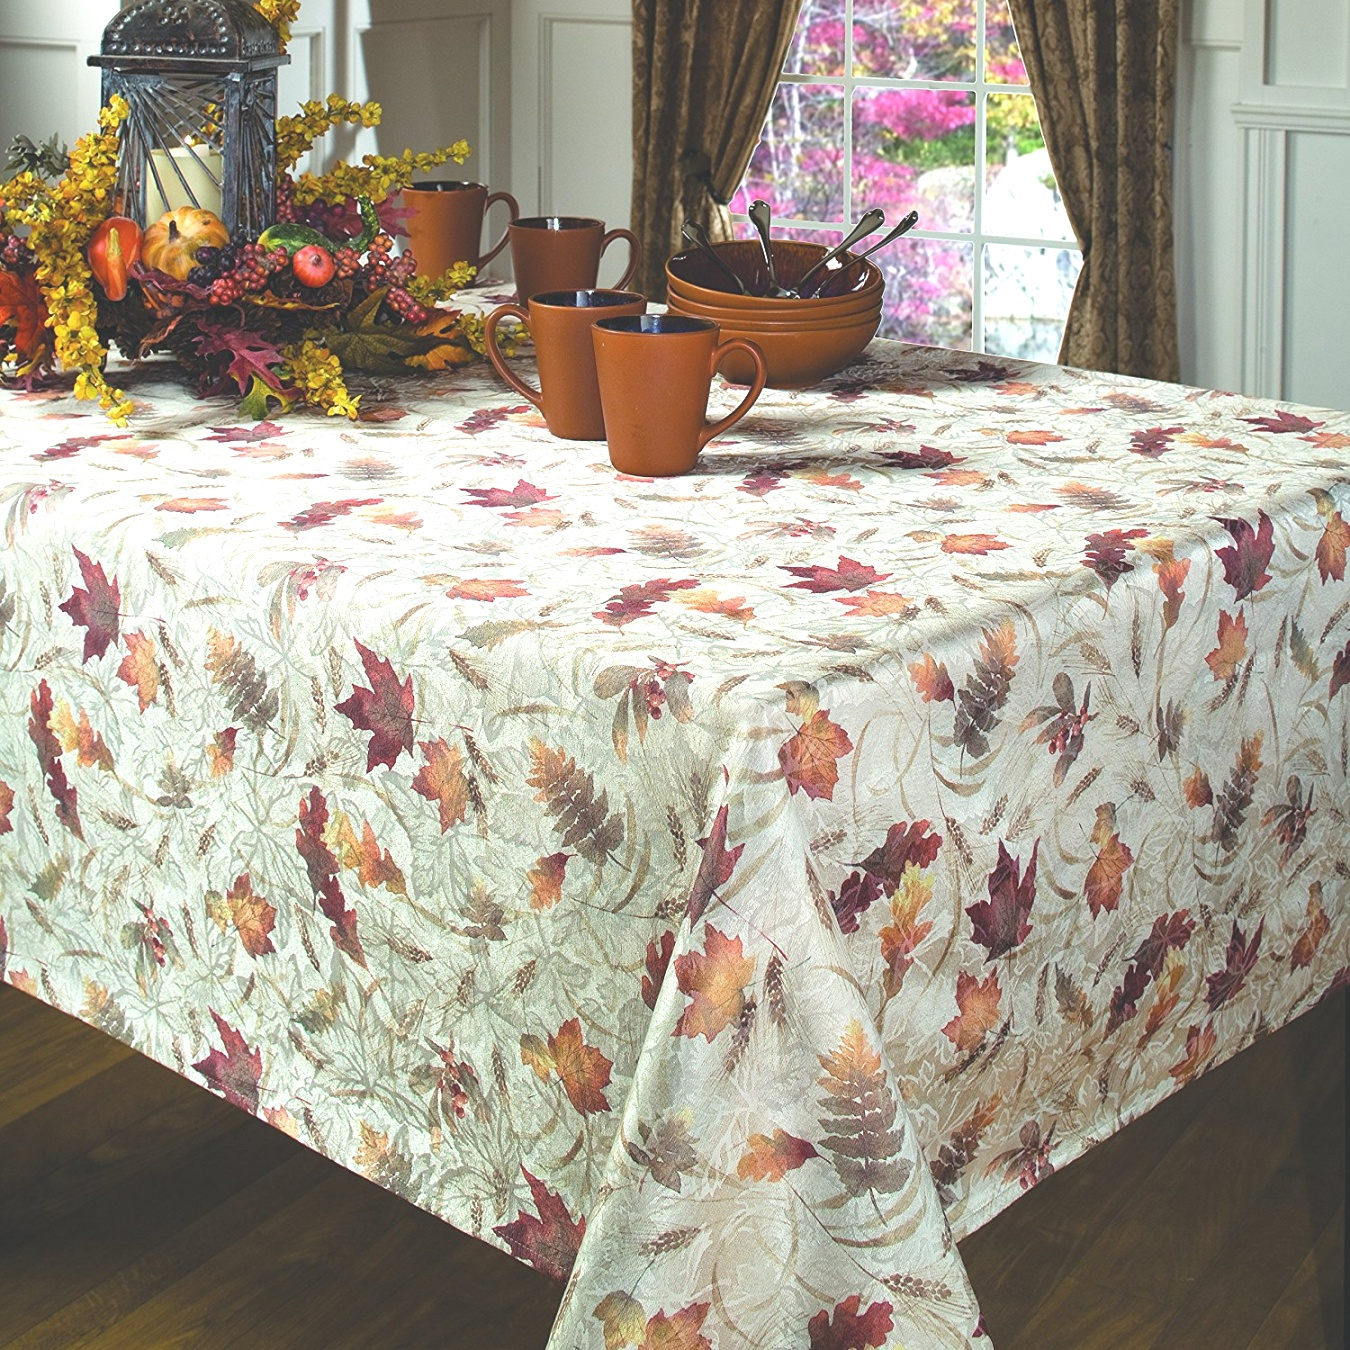 fall table linens | Amazon.com: Benson Mills Natures Leaves Jacquard Printed Fabric ..